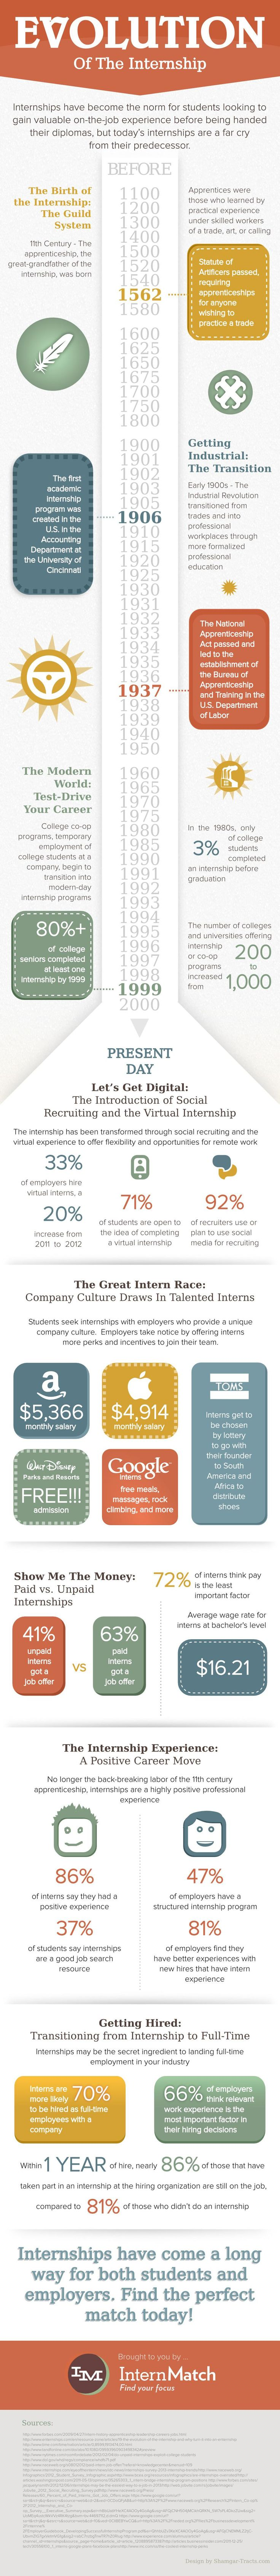 Did you know that an internship will make you 70% more likely to get hired full-time by a company than candidates with no experience at that company?